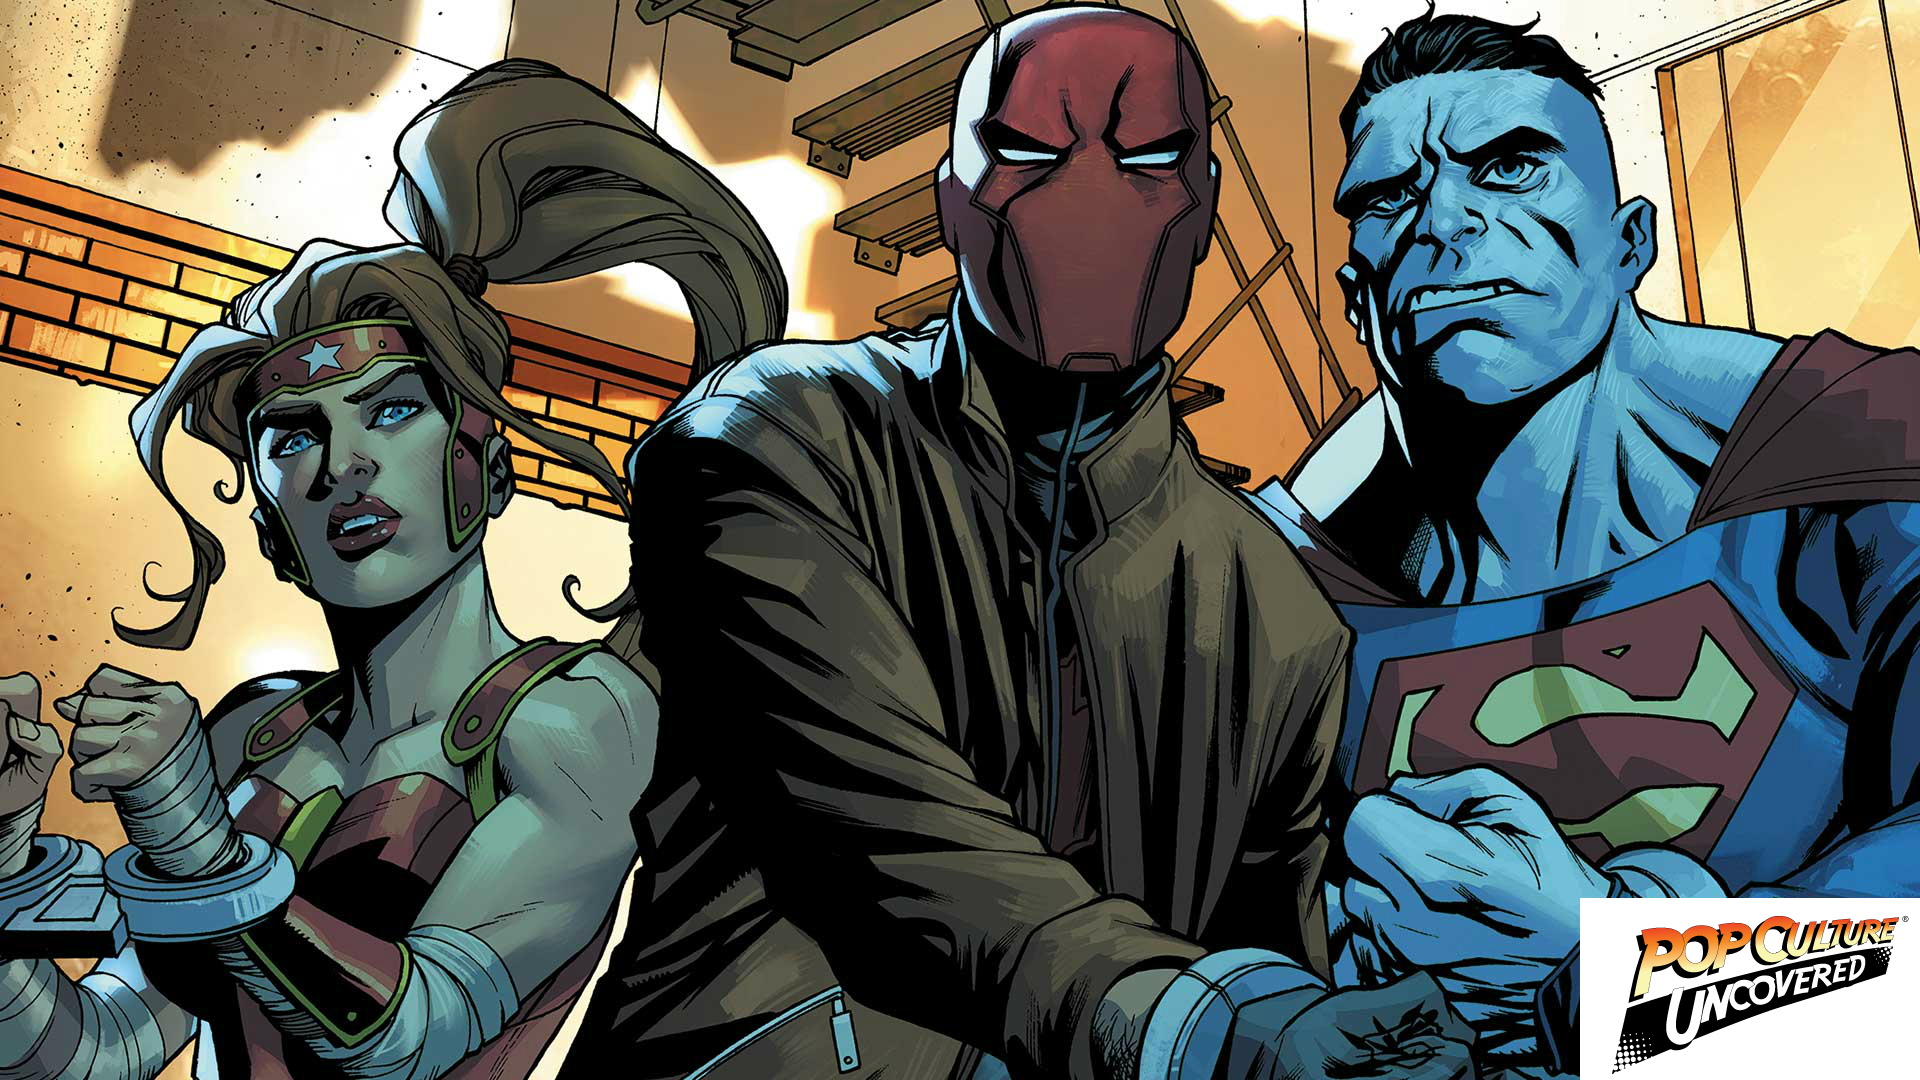 Review Brew Red Hood And The Outlaws 16 Pop Culture Uncovered